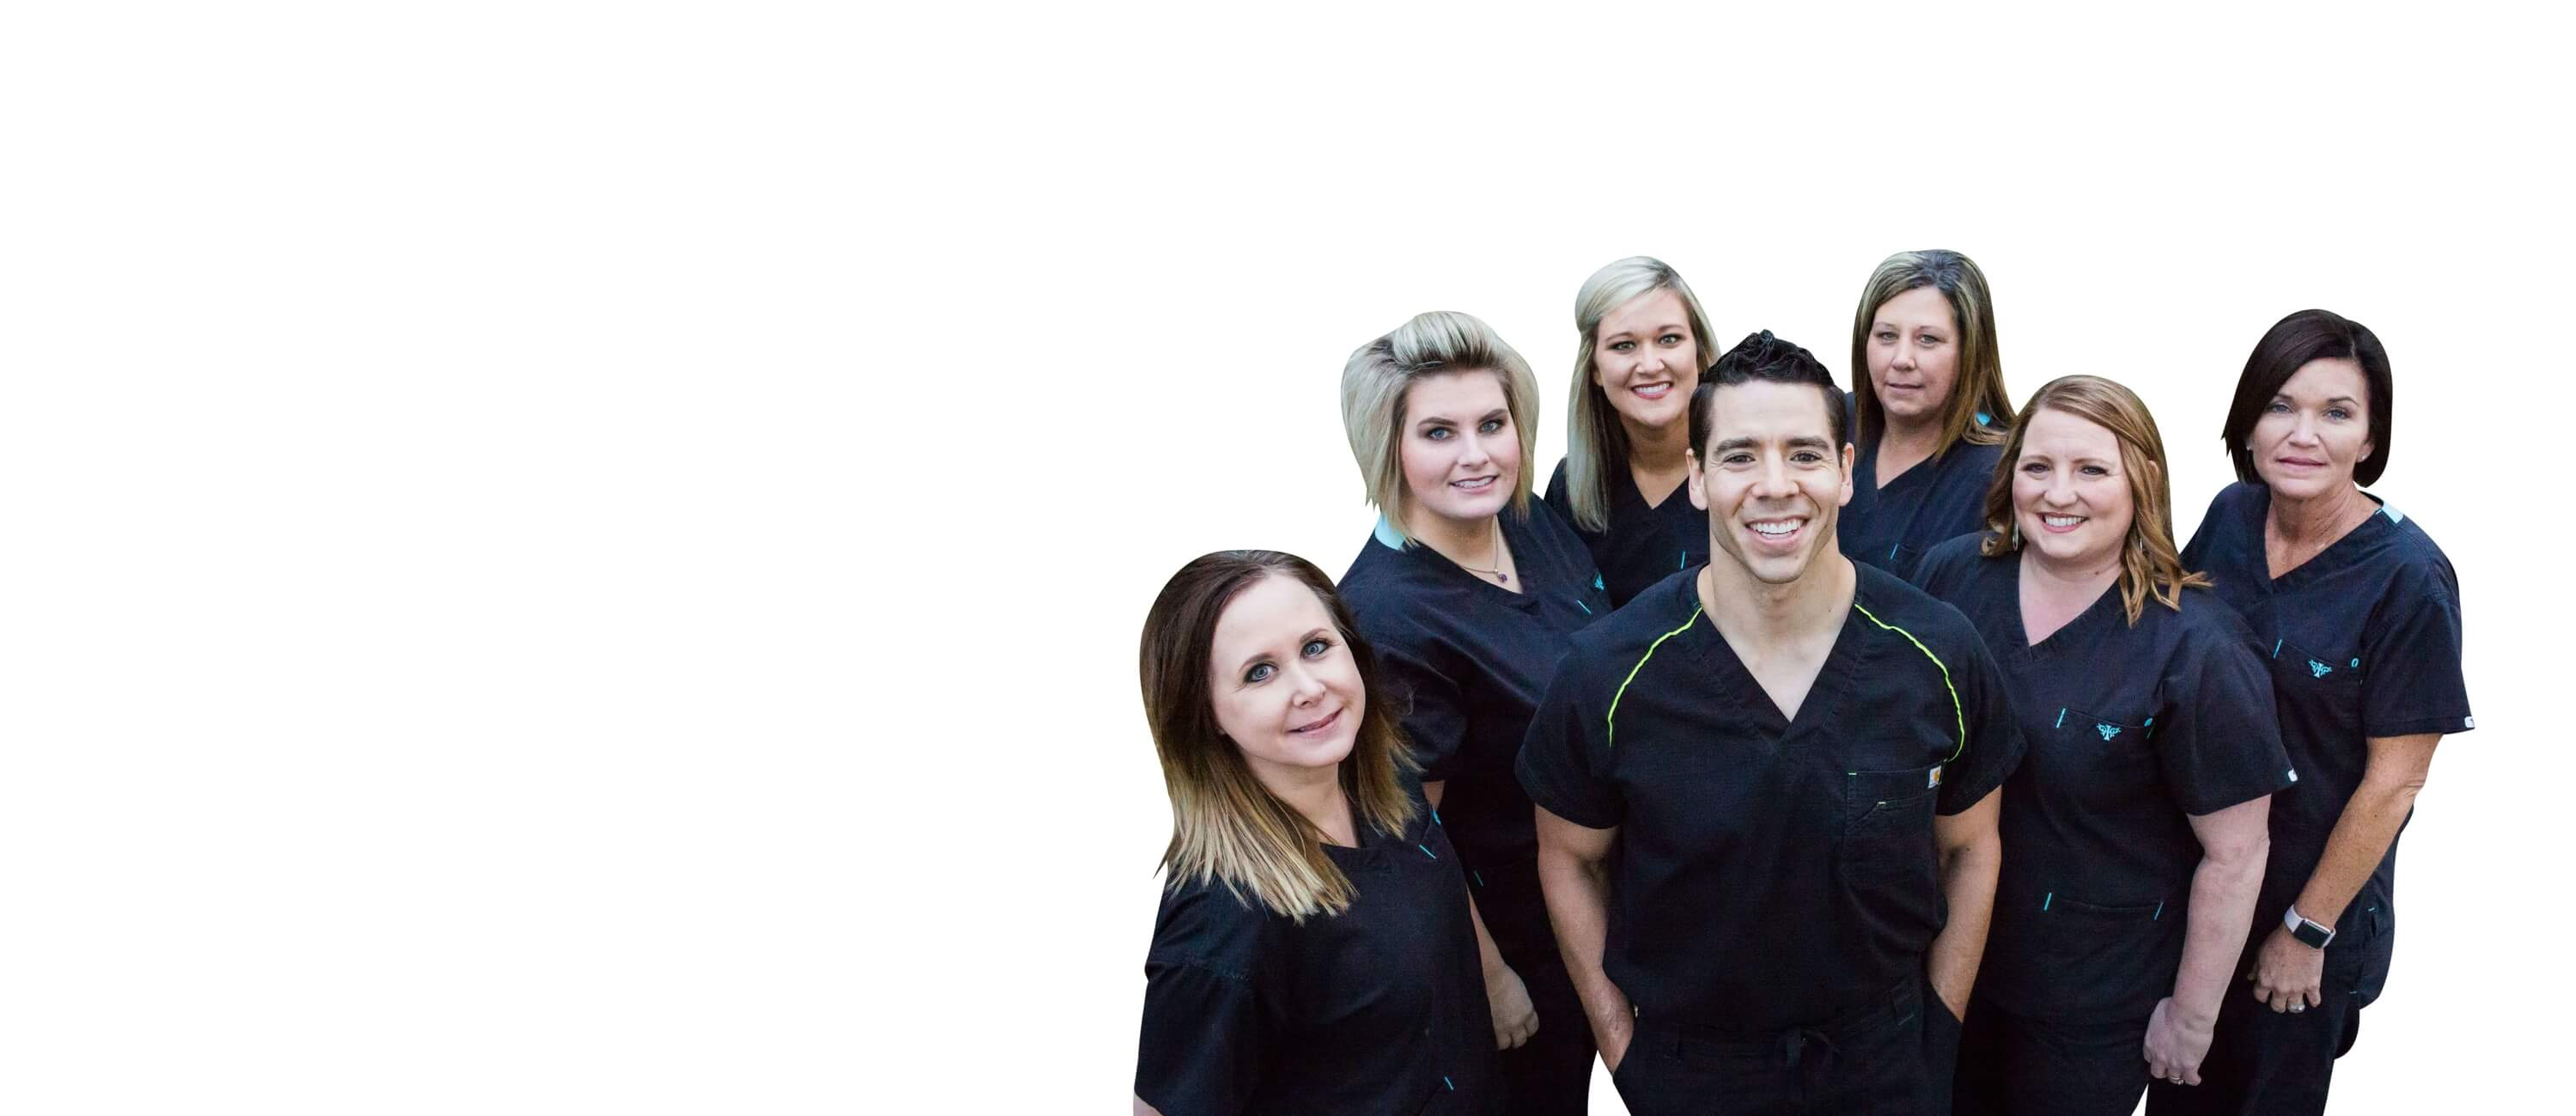 dentist-paris-texas-team-slider-2